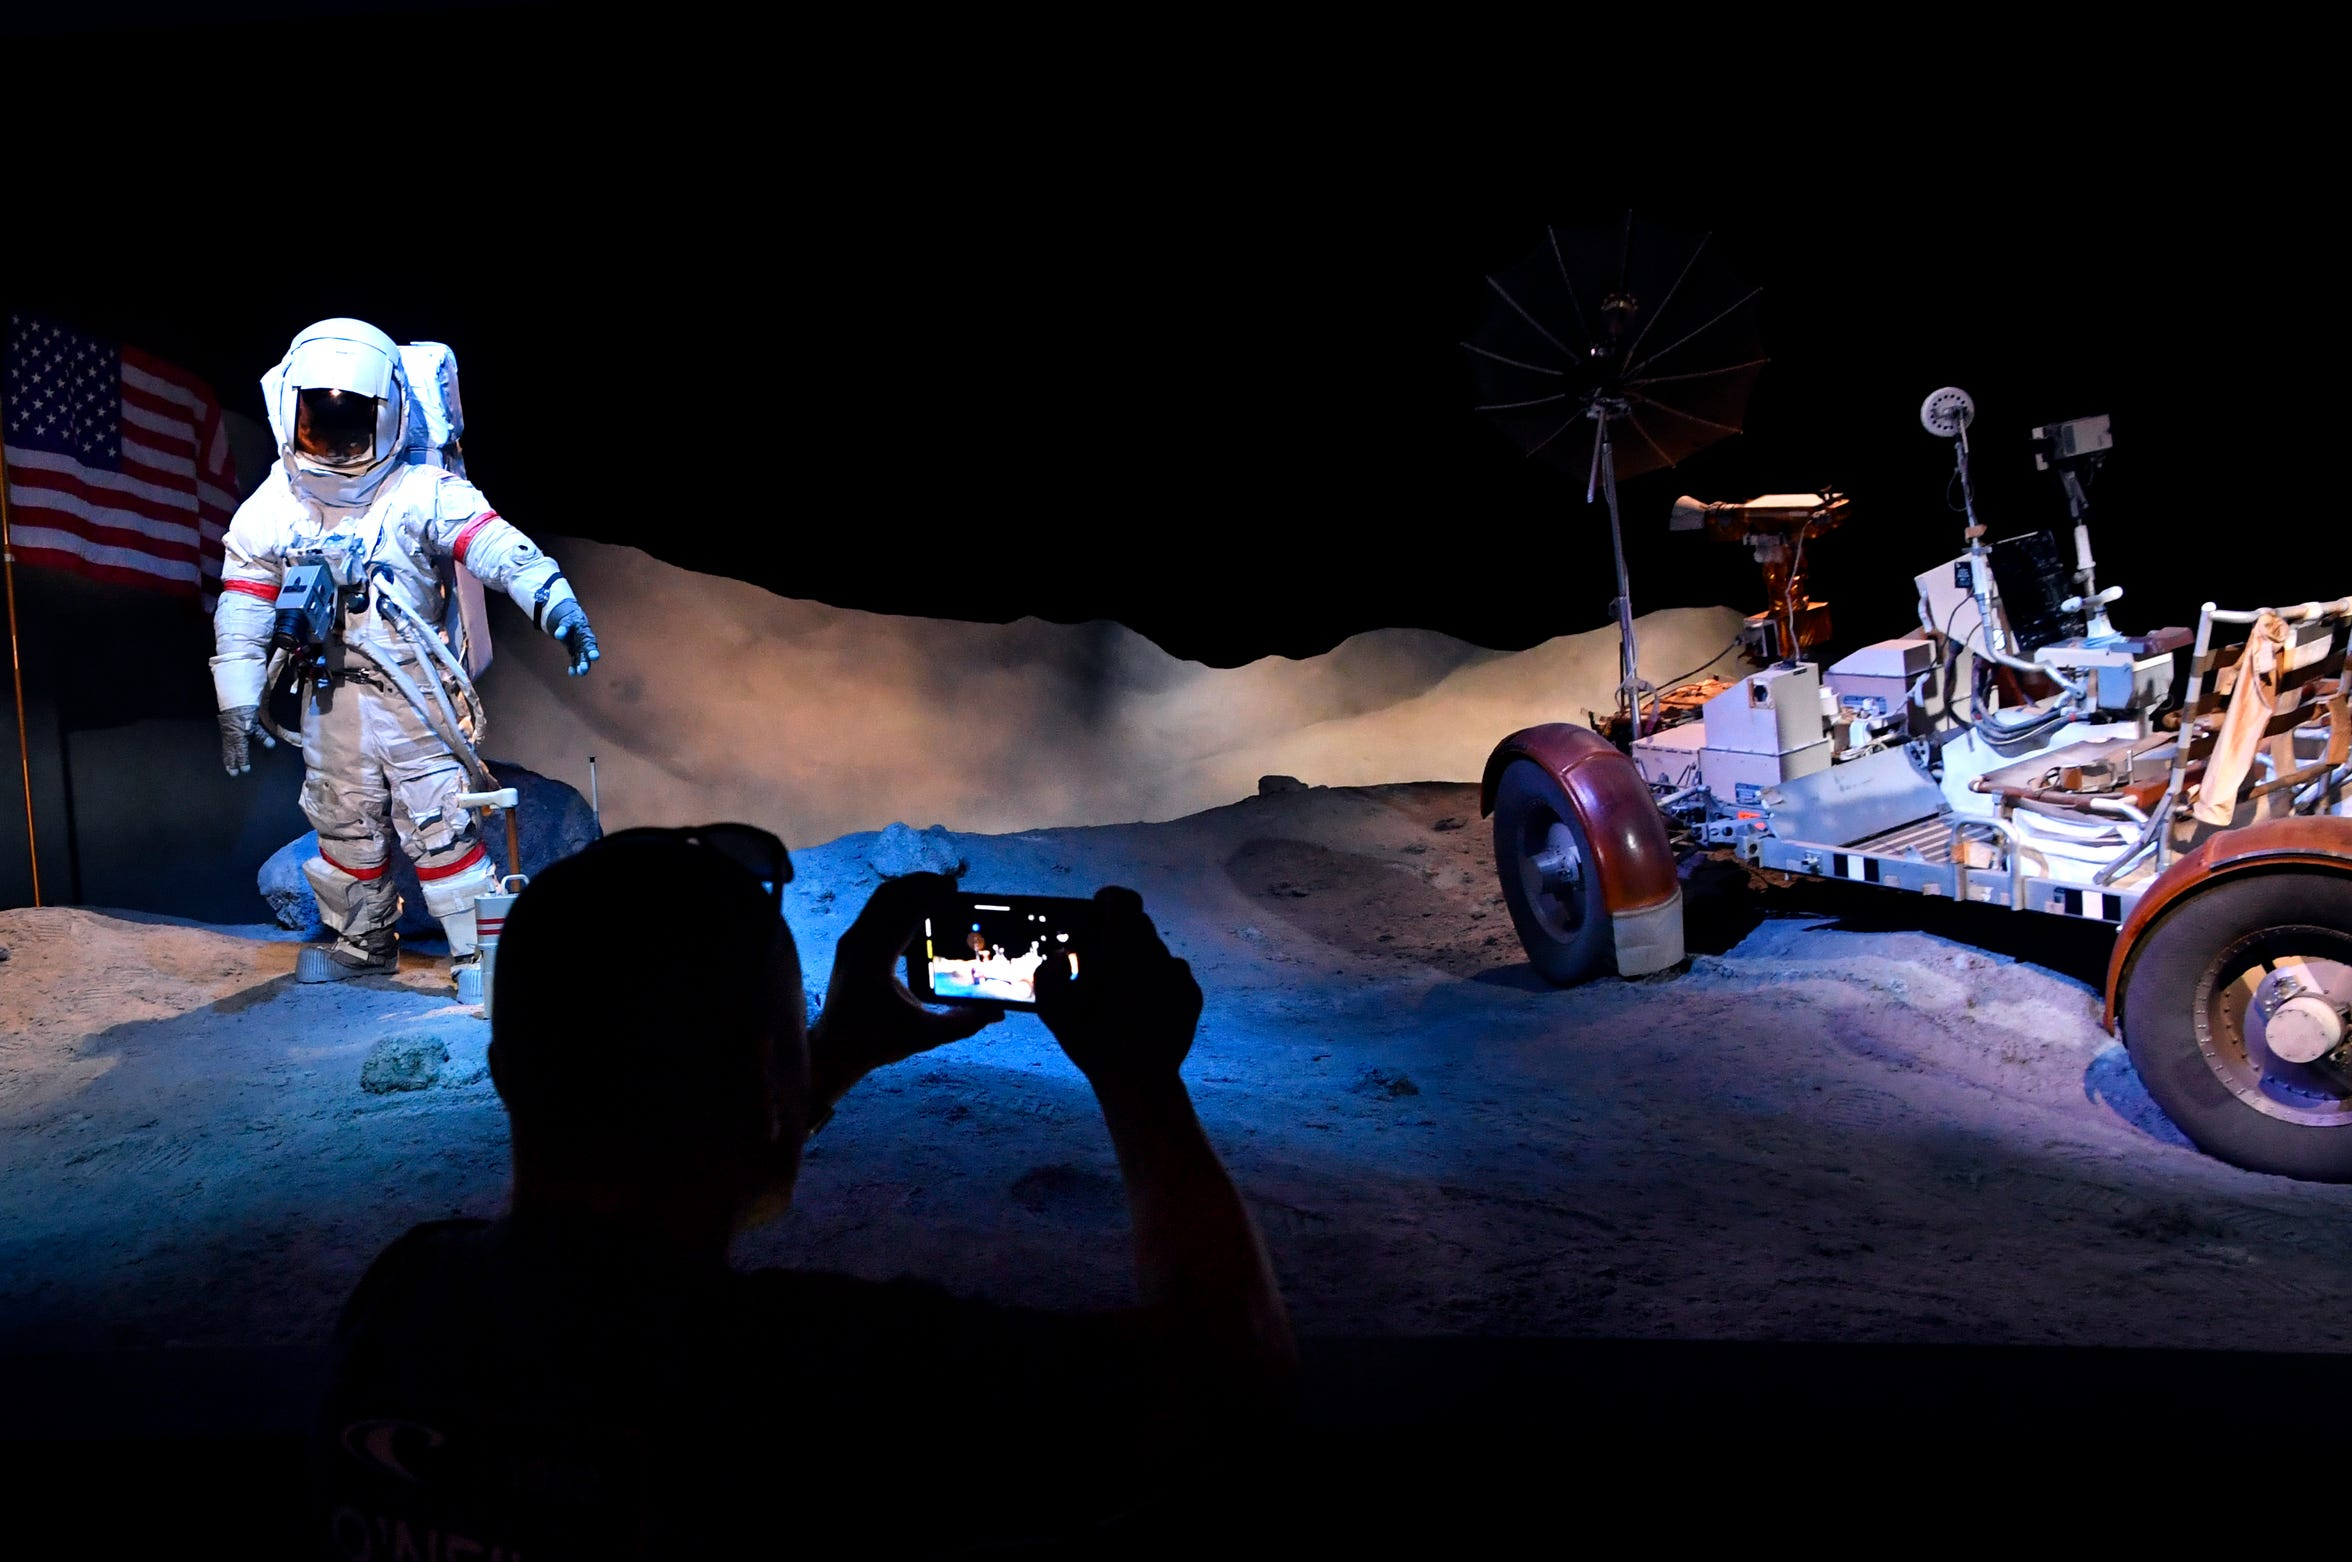 A visitor to Space Center Houston's Starship Gallery photographs the LG-1 Lunar Roving Vehicle trainer on exhibit .